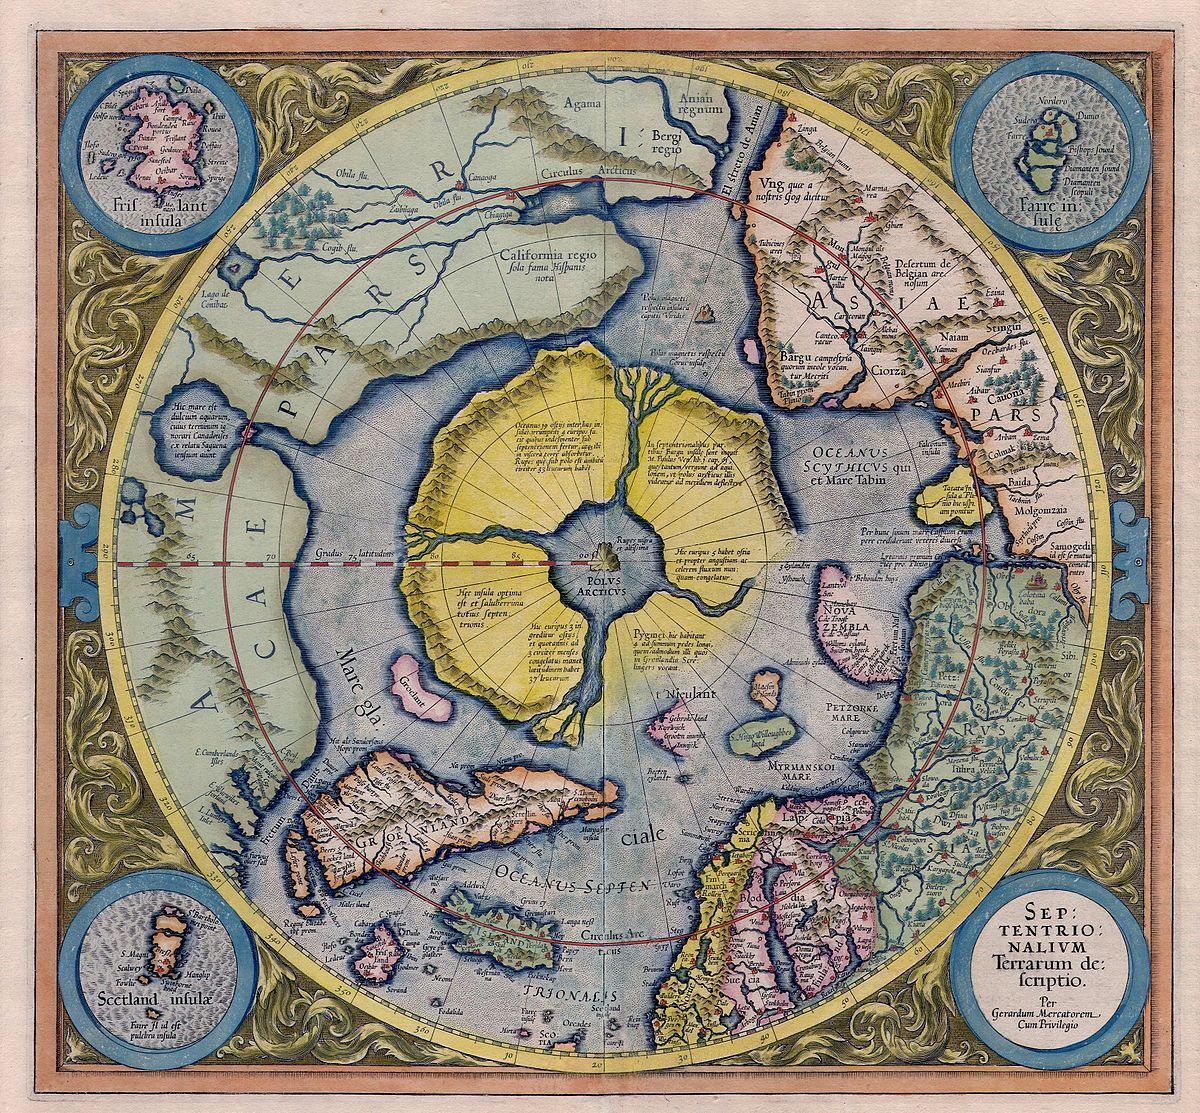 Hyperborea - Wikipedia on map of ephesus, map of macedonia, map of aegean sea, map of troy, map of corinth, map of middle east, map of ireland, map of mount olympus, map of mongolia, map of mediterranean, map mediterranean region, map of europe, map of united states, map of santorini, map of africa, map of judea, map of european countries, map of athens, map of the west indies, map of india,